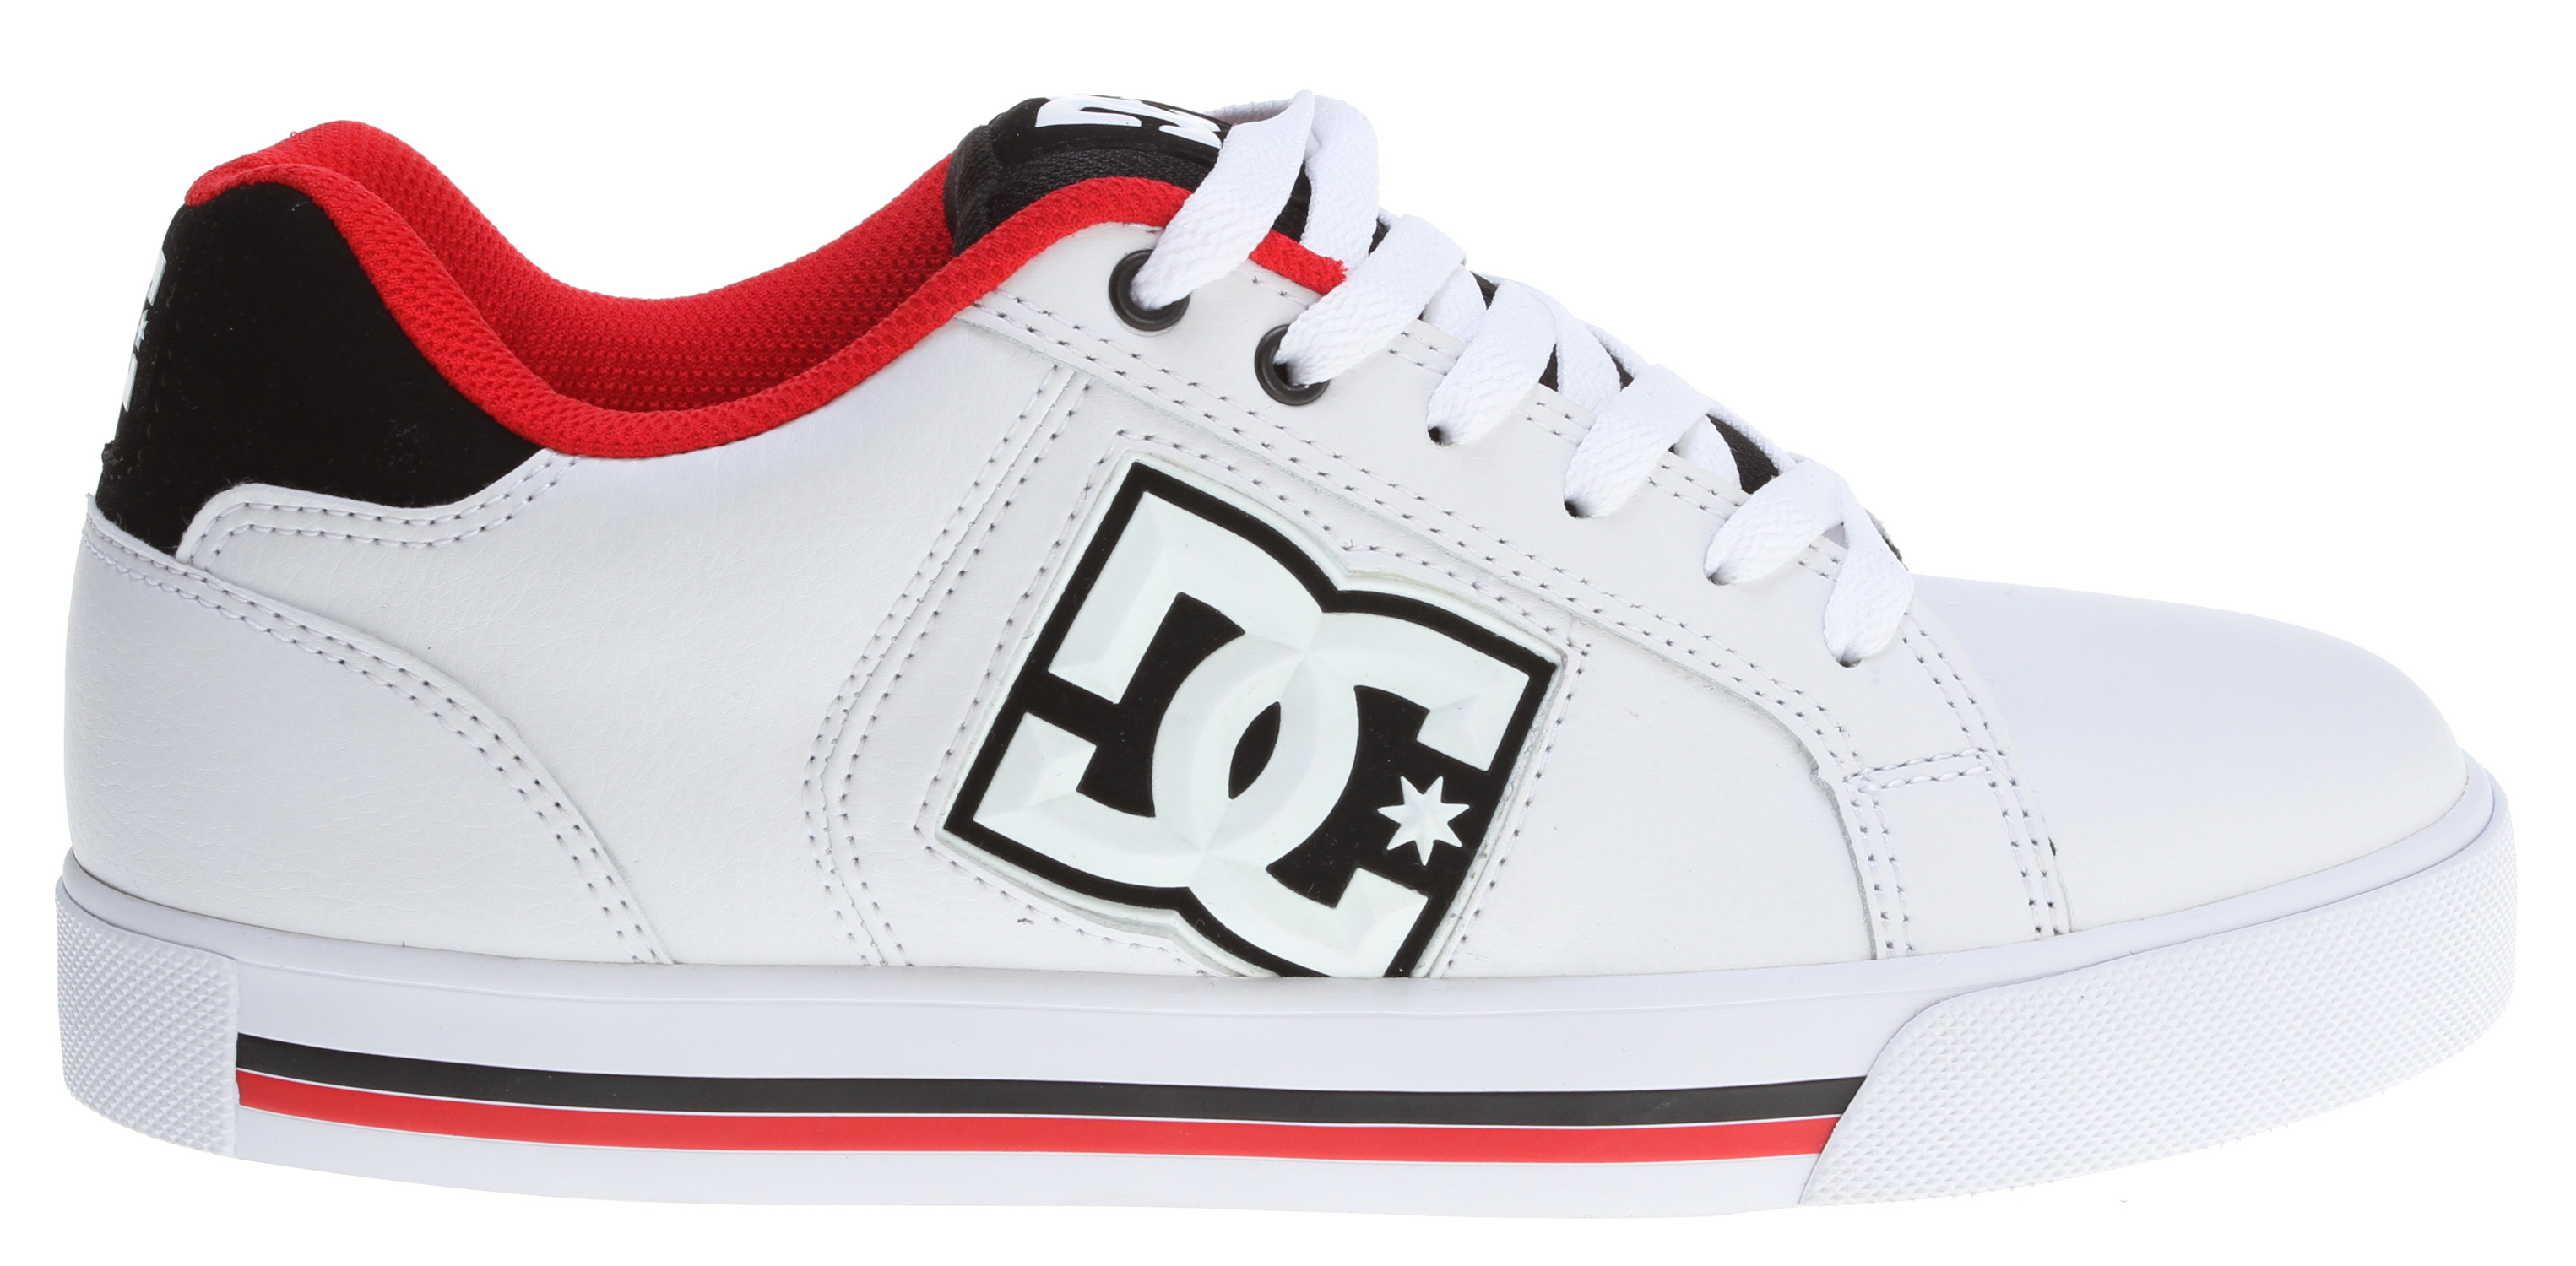 "Skateboard Key Features of the DC Stock Skate Shoes: Heavy-Duty Suede Upper Perforated Upper Panel Vent holes in upper Metal Eyelets Foam-Padded Tongue and Collar Spandex Tongue Holders Performance Rubber Wrap Cup Sole DGT Abrasion-Resistant Sticky Rubber Outsole with DC's Trademarked ""Pill"" Pattern - $38.95"